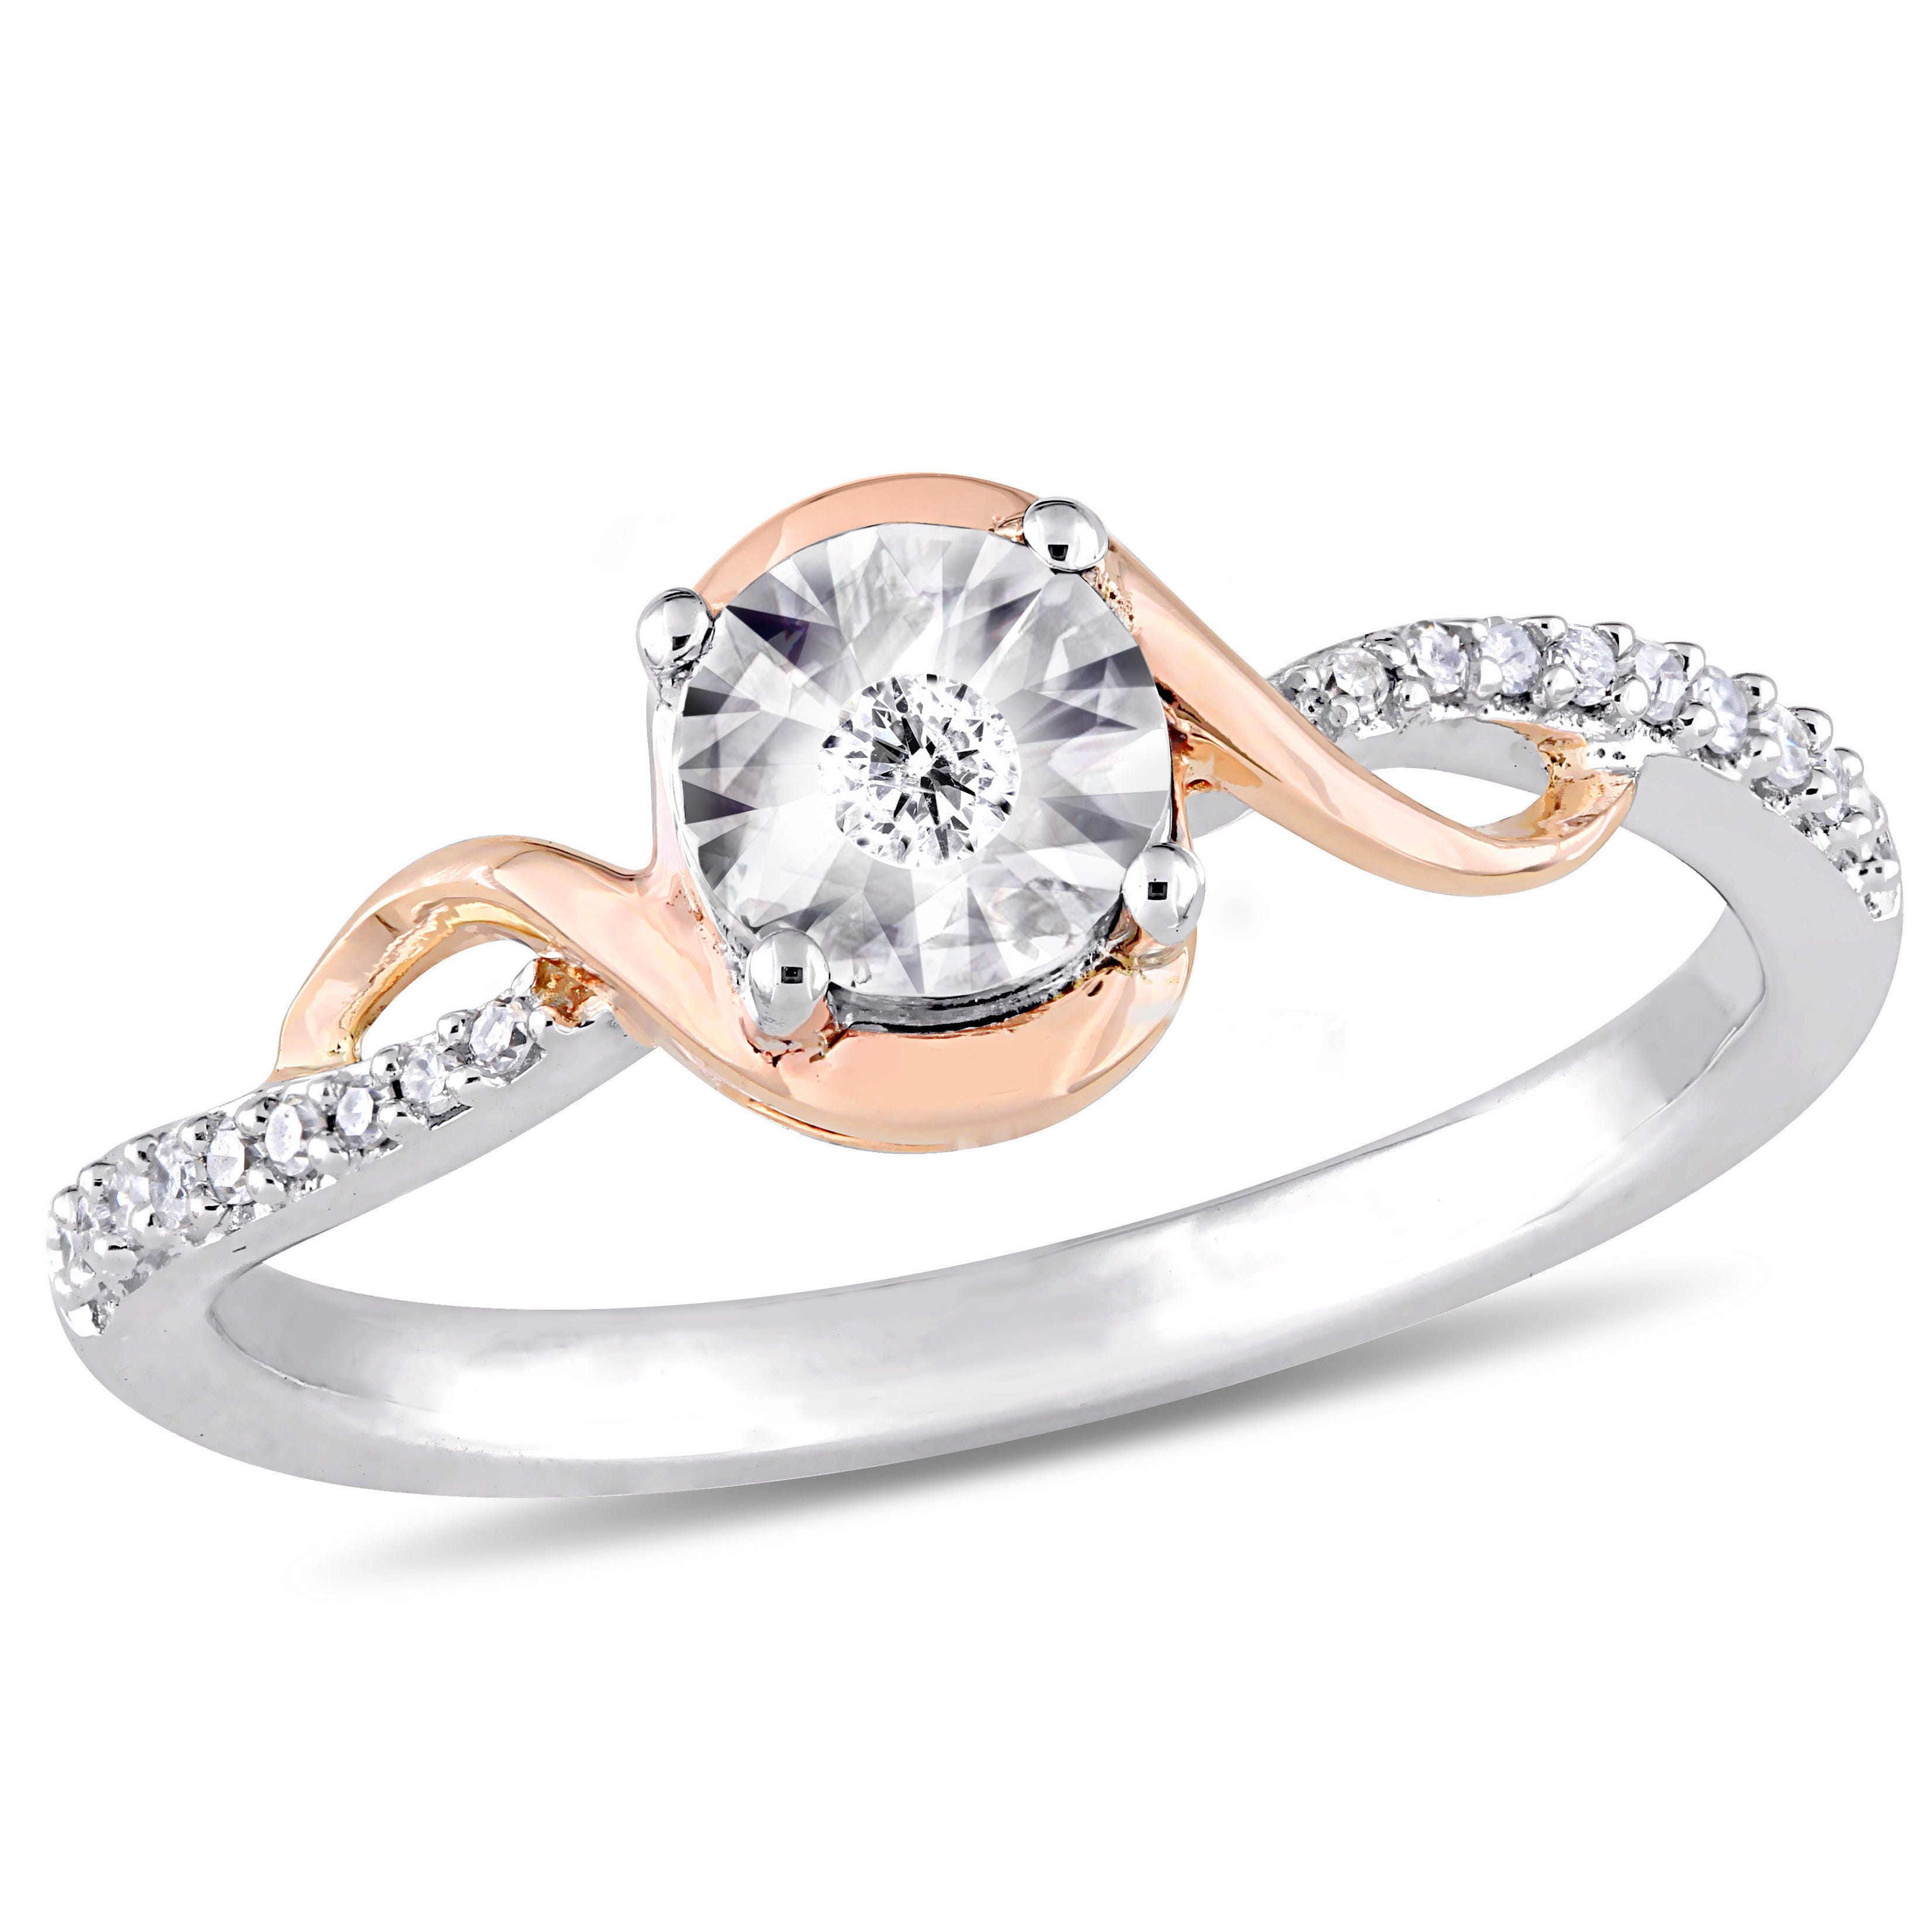 Diamond Promise Ring 1/10ctw in 10k White and Rose Gold